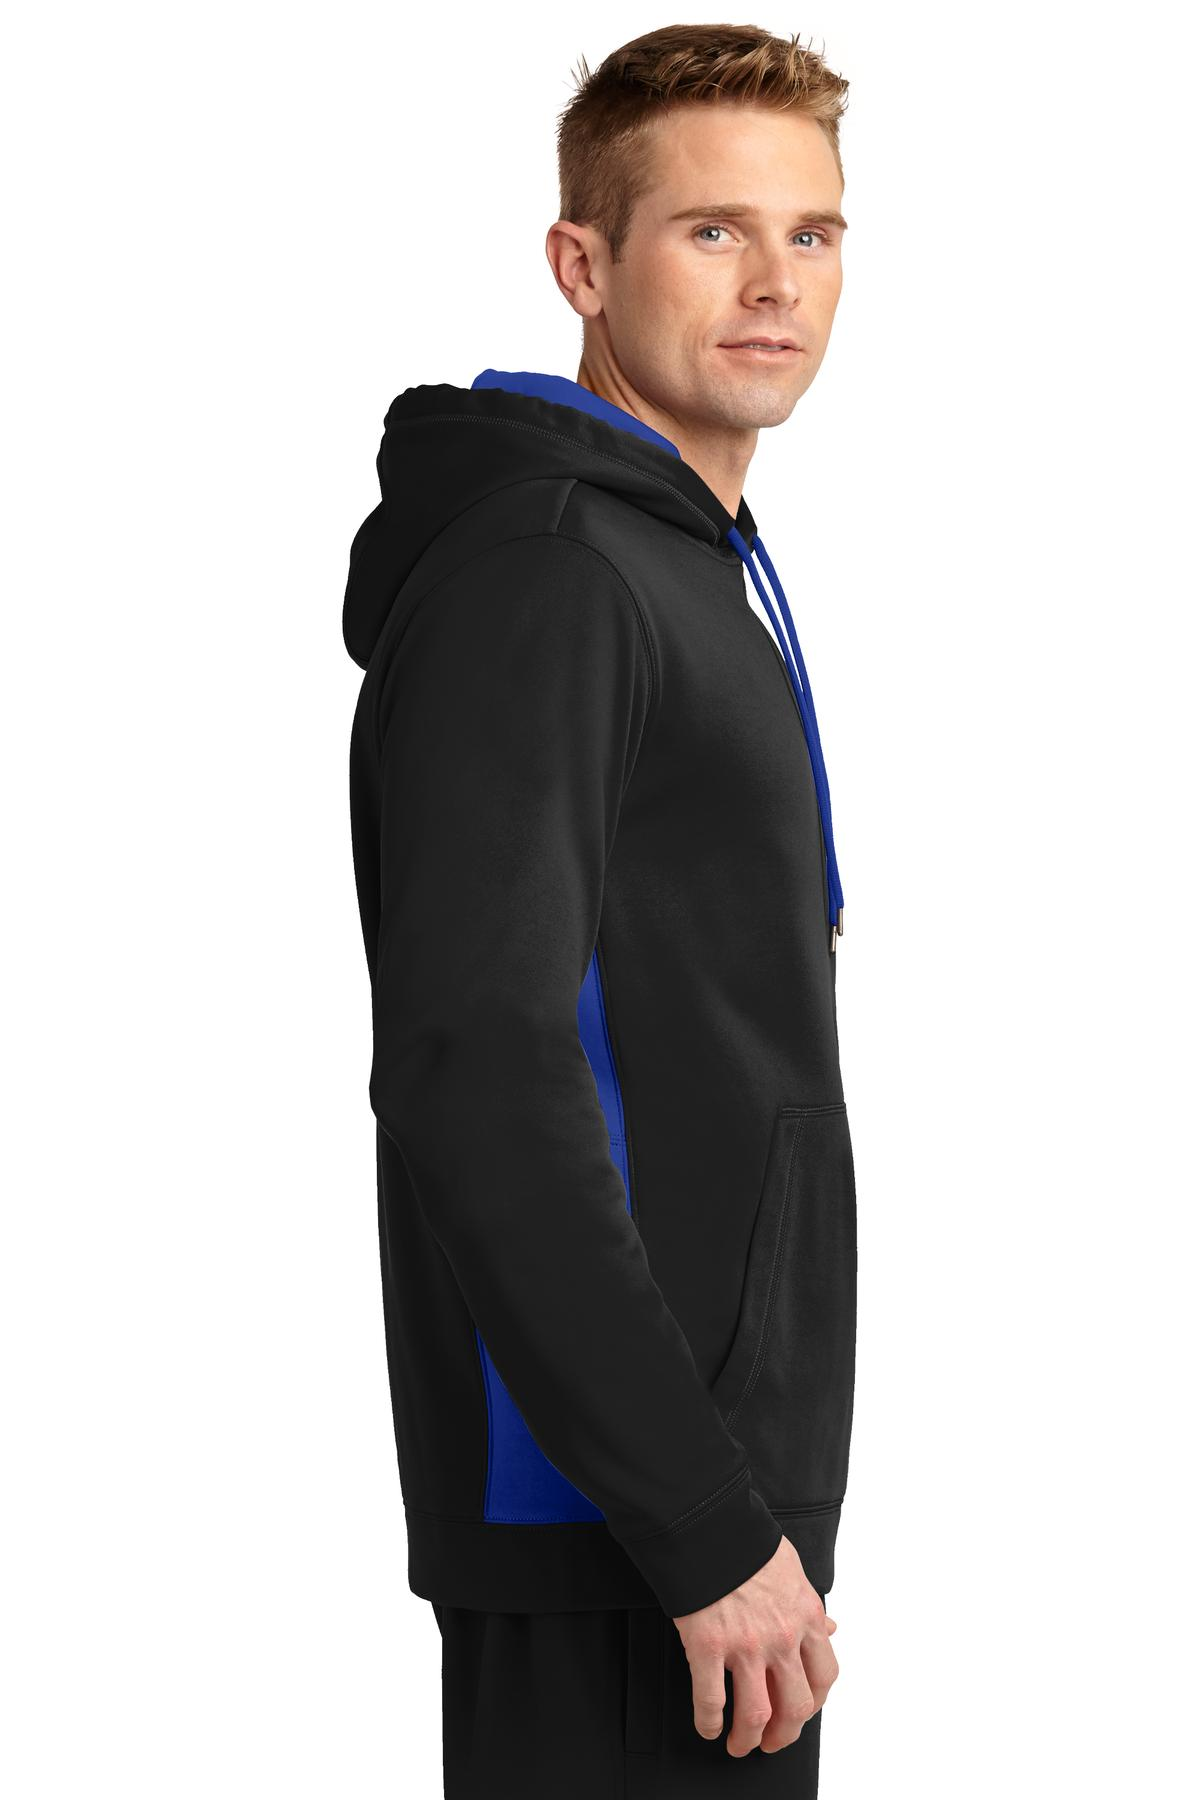 Fleece Colorblock Hooded Pullover - RCG1420